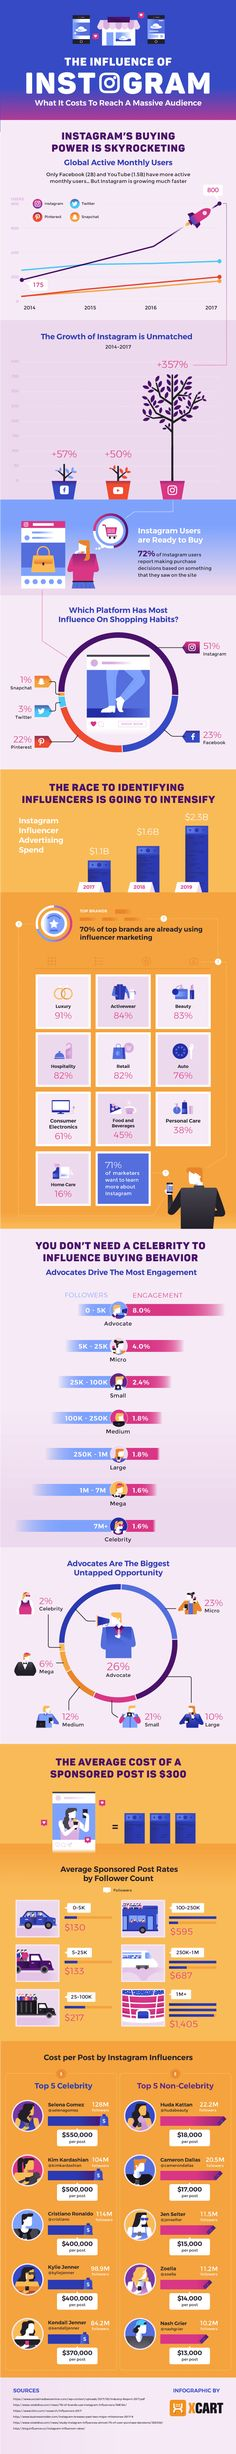 Instagram influencer marketing has become a must-be platform to reach millions of potential customers. But how well is your business using it? The infographic below shows all the important Instagram data and statistics, and why businesses should be on Instagram right now.